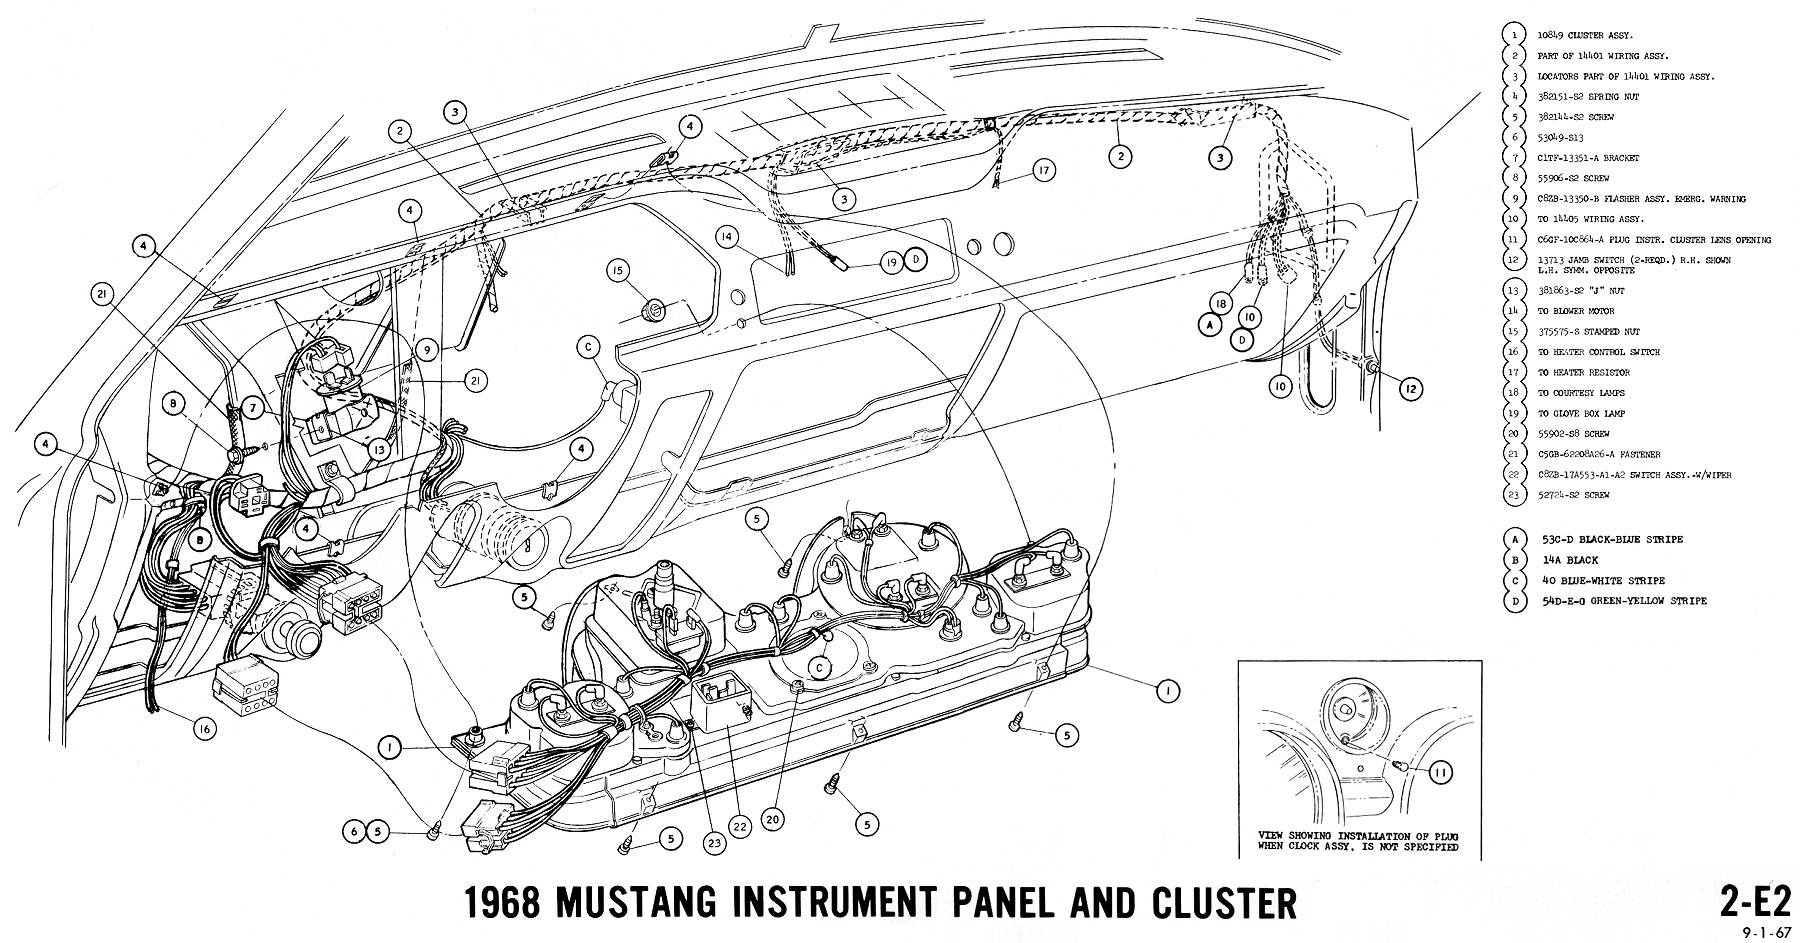 67 Mustang Tach Wiring Diagram Library Gt Tachometer 1968 Dash Cluster Electrical Diagrams Instrument